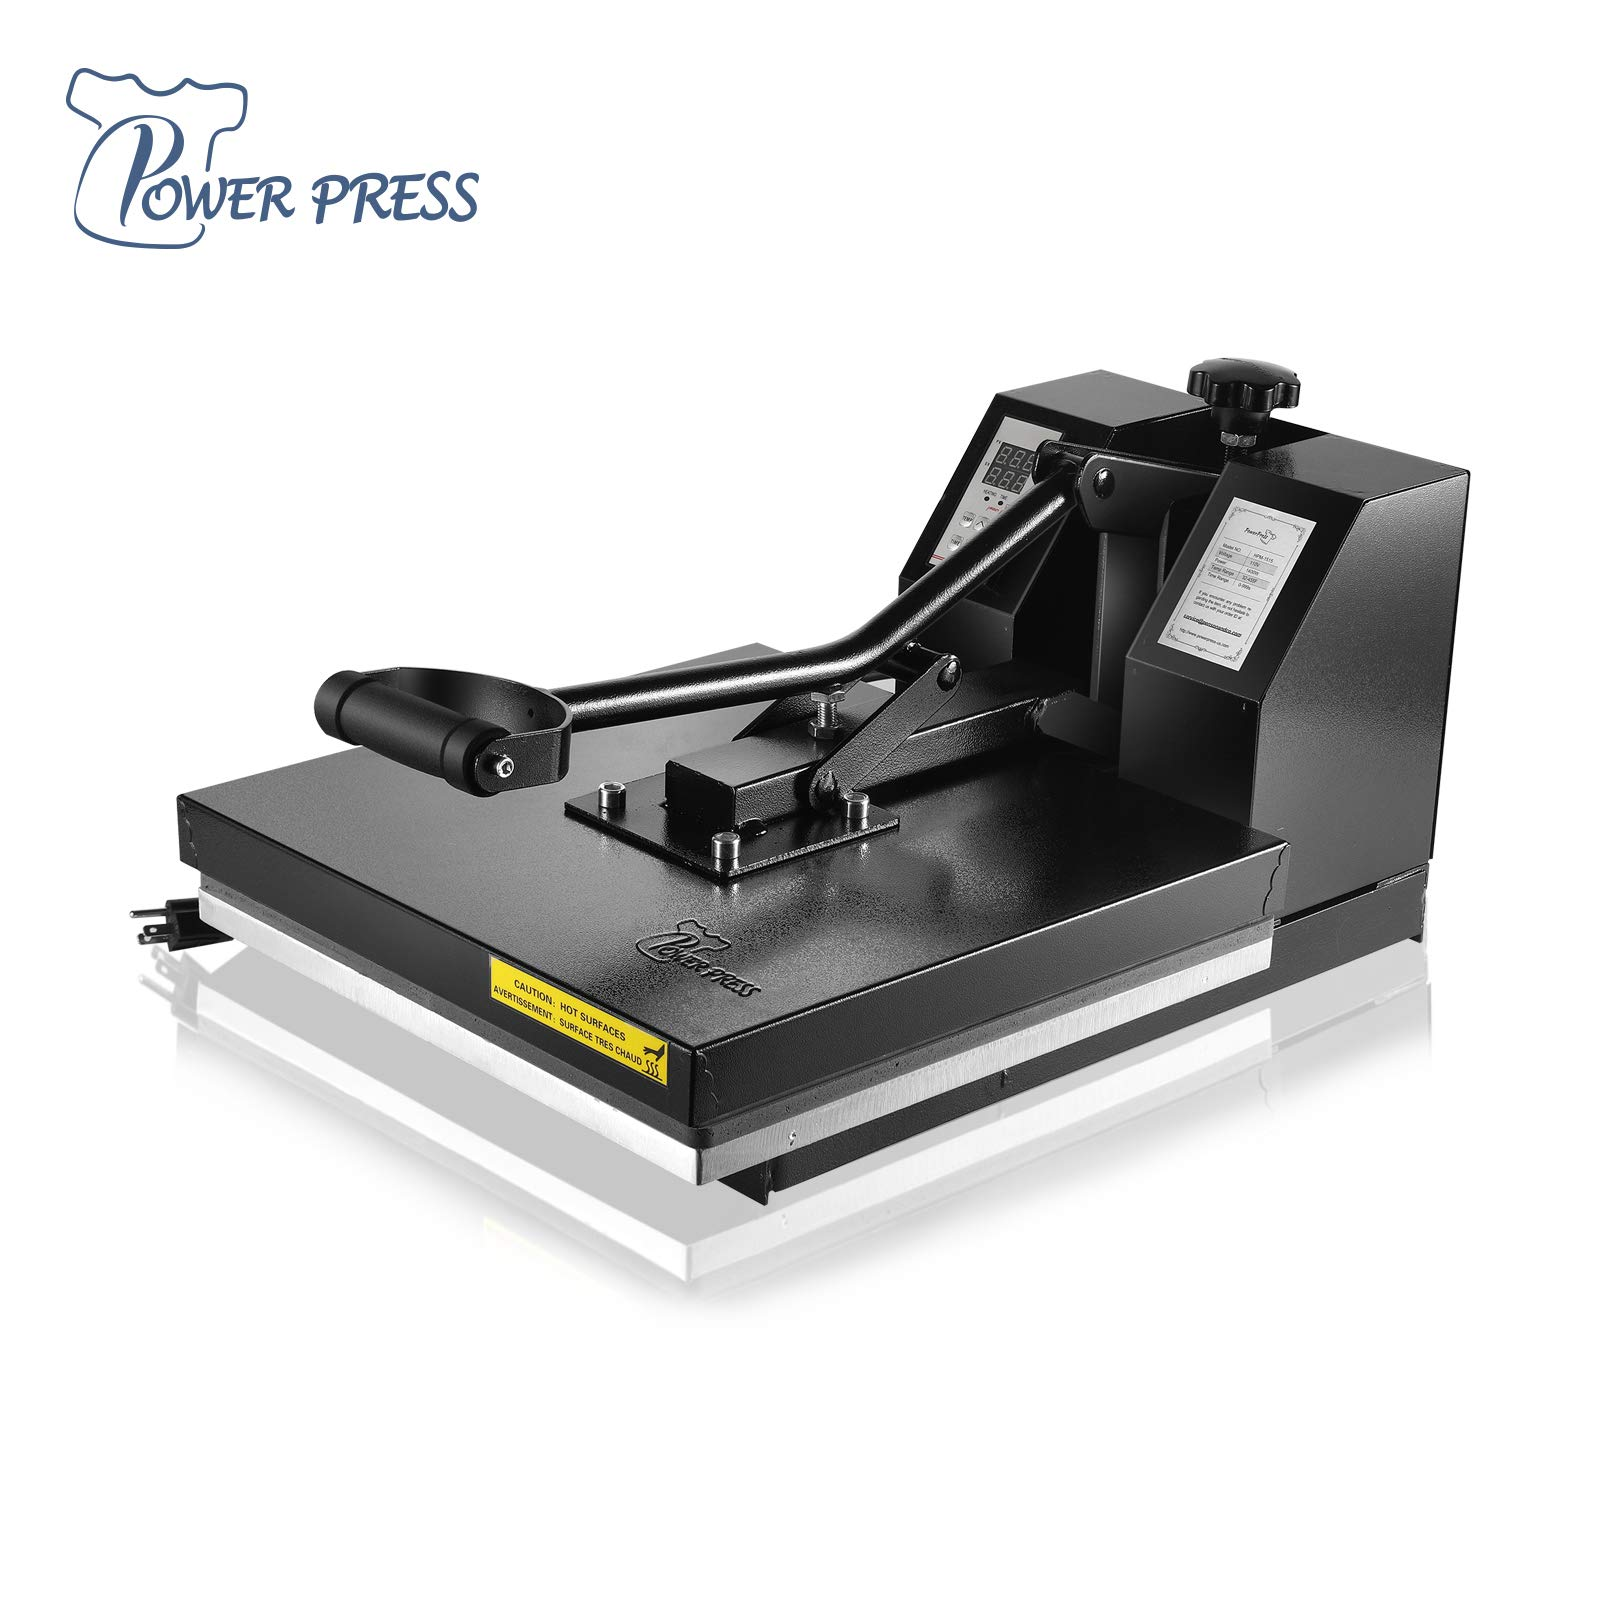 PowerPress HPM 1515 BK Industrial Quality Digital Sublimation